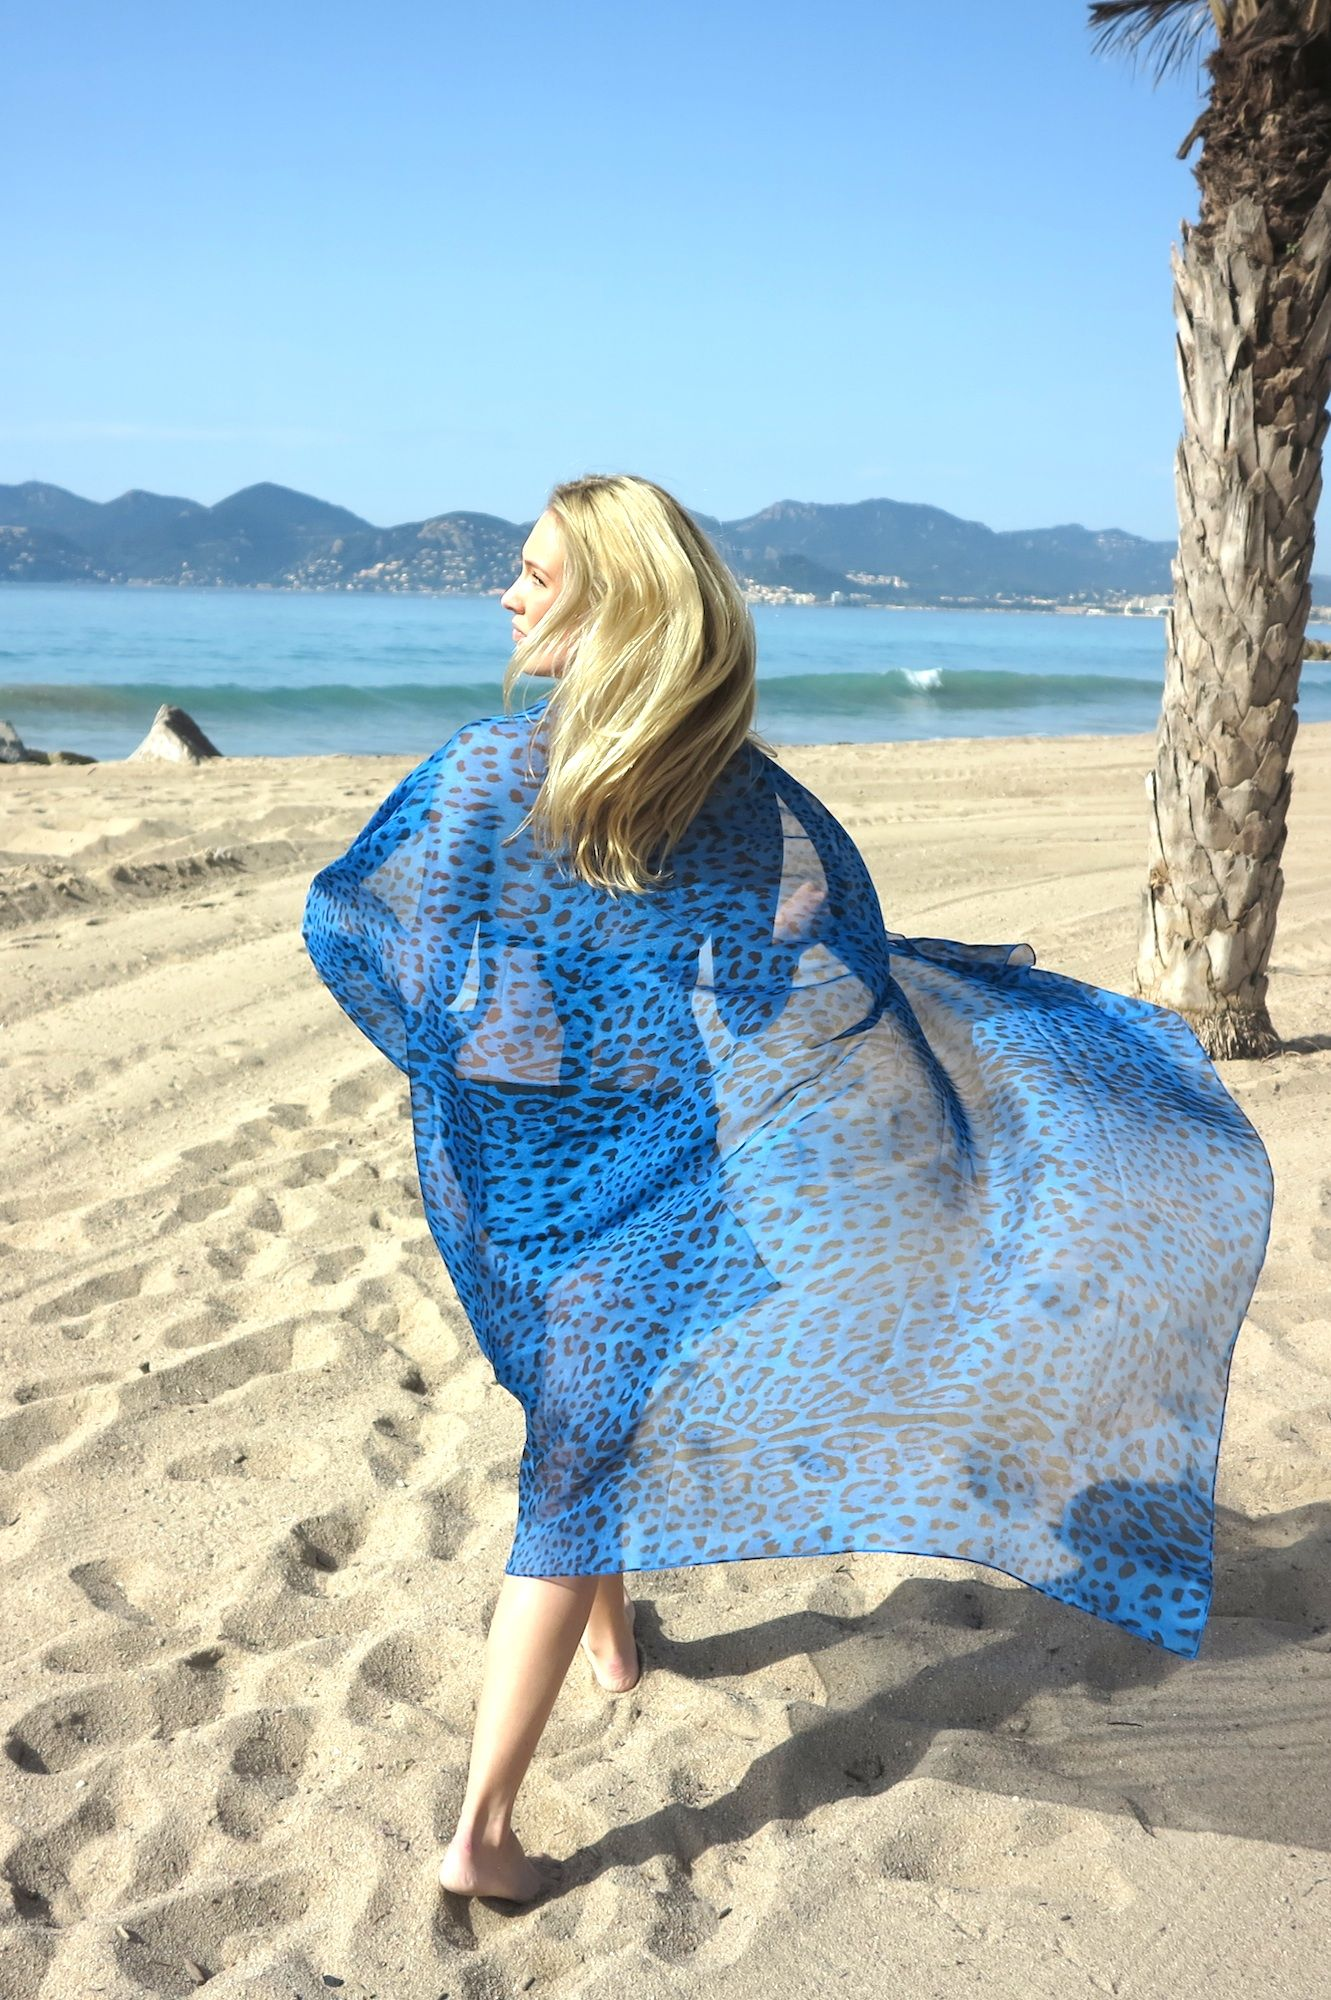 c32a0a4878 Online Luxury Beachwear and Cover Ups | Blue Leopard Print Sarong ...